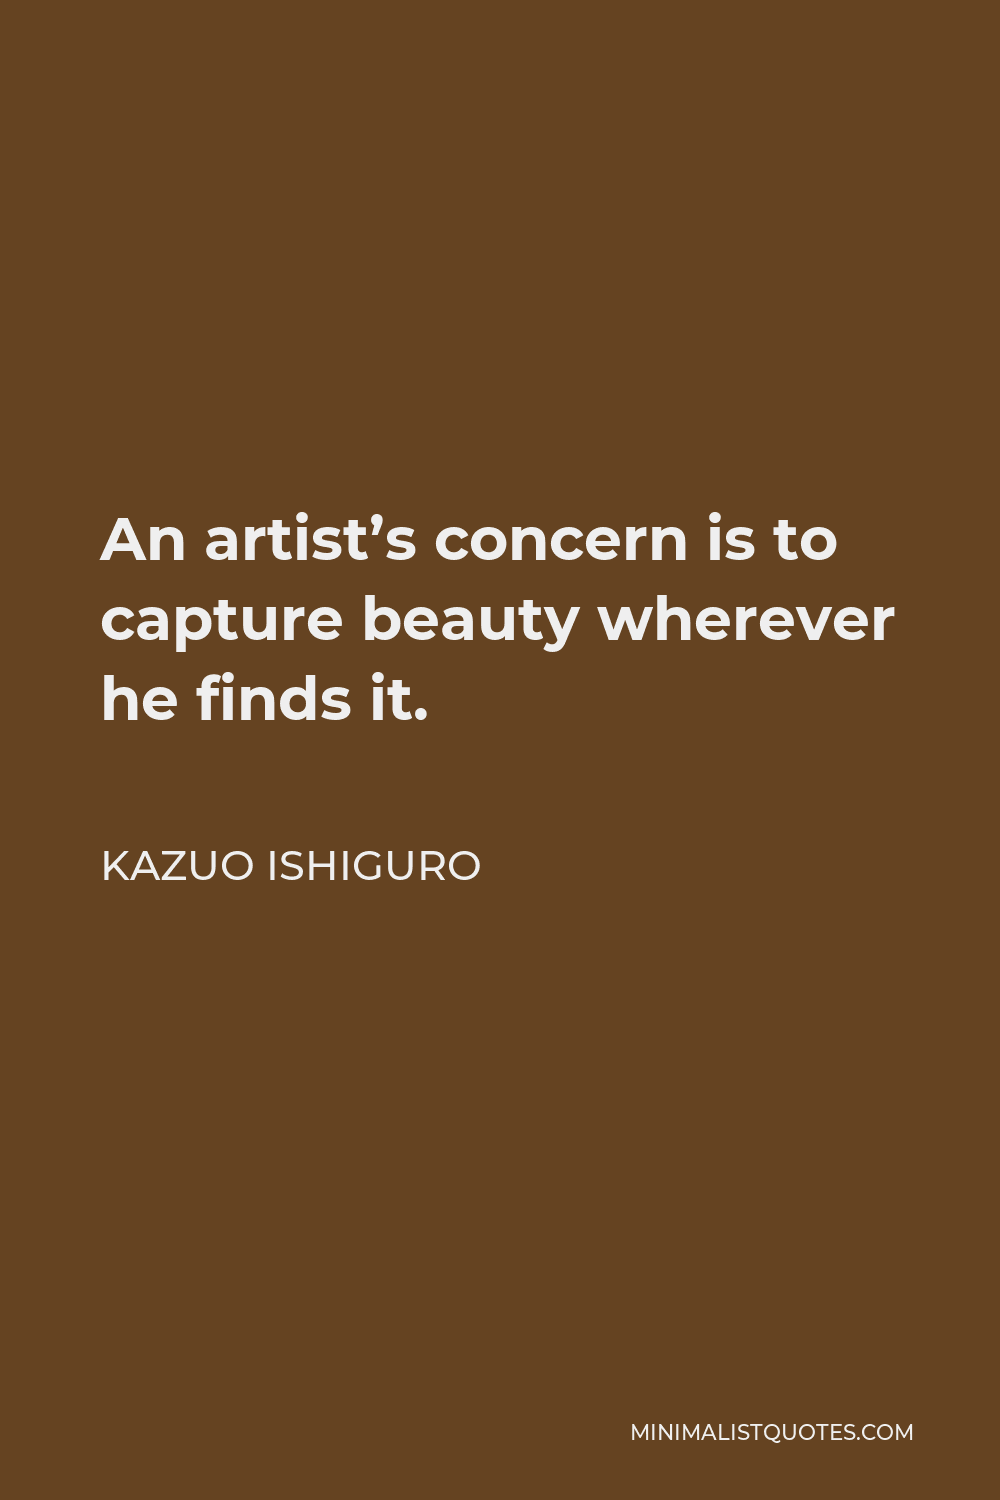 Kazuo Ishiguro Quote - An artist's concern is to capture beauty wherever he finds it.